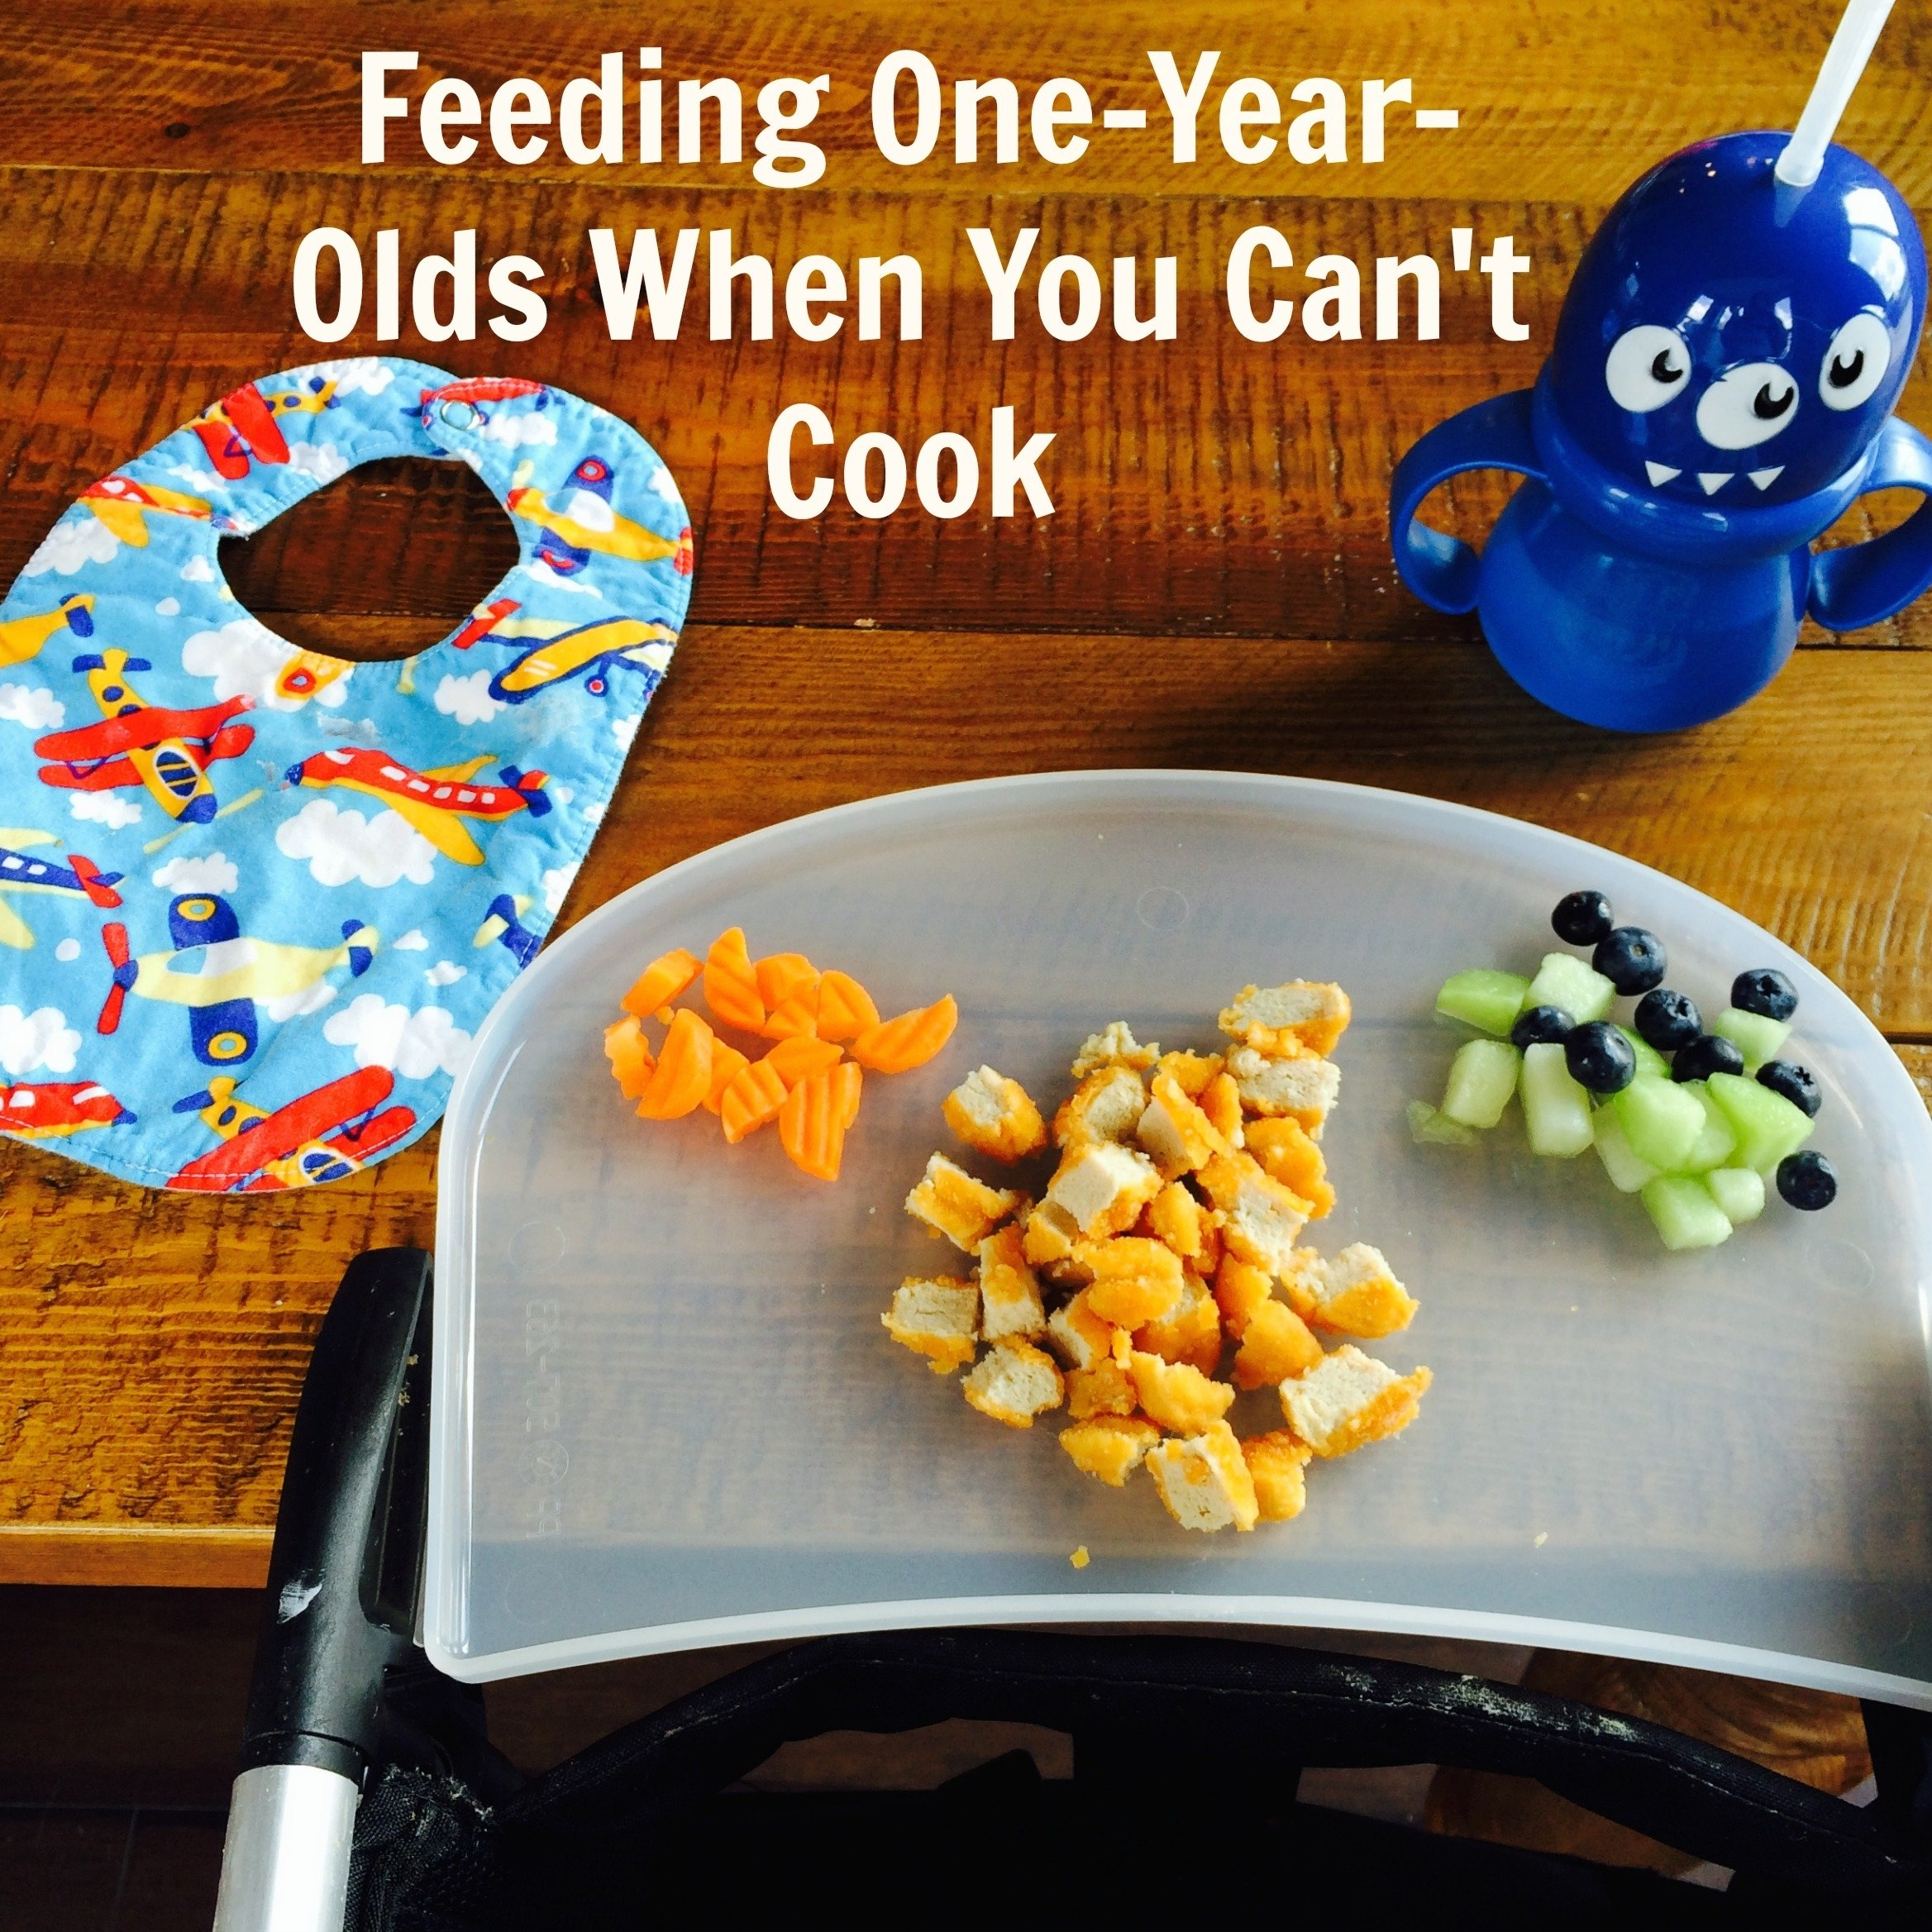 10 Famous 1 Year Old Lunch Ideas feeding one year olds